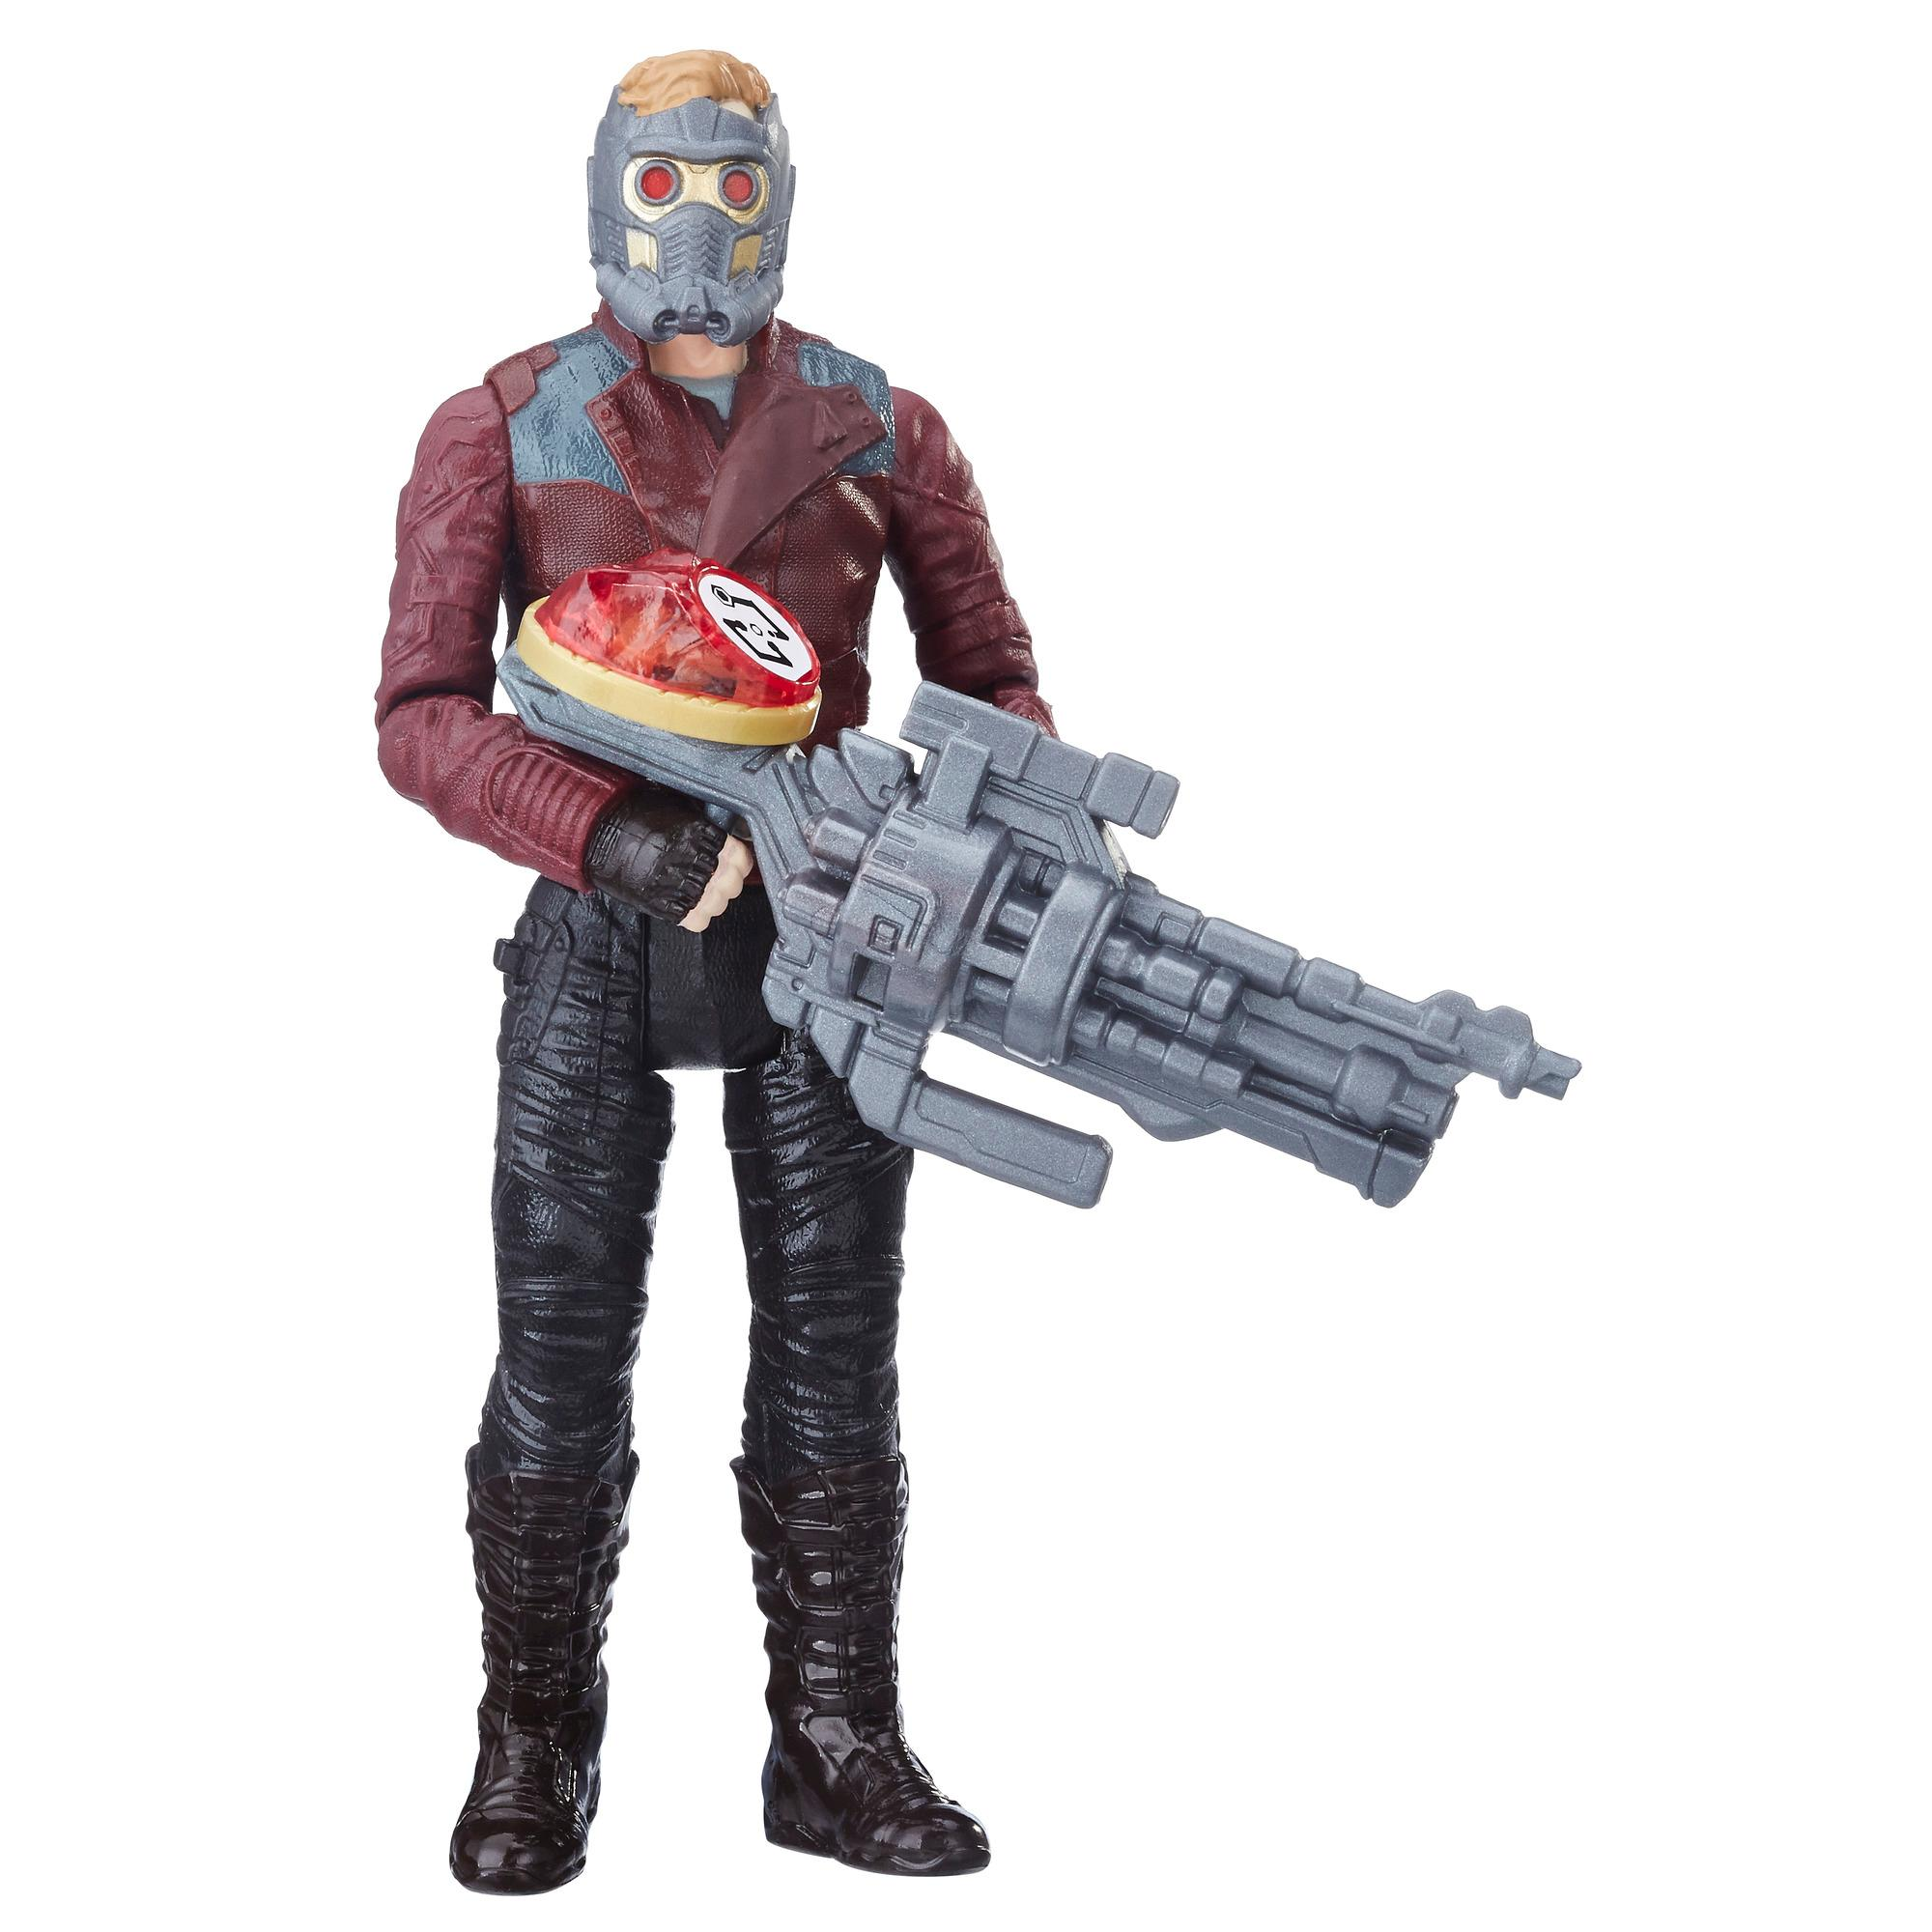 Marvel Avengers: Infinity War Star-Lord